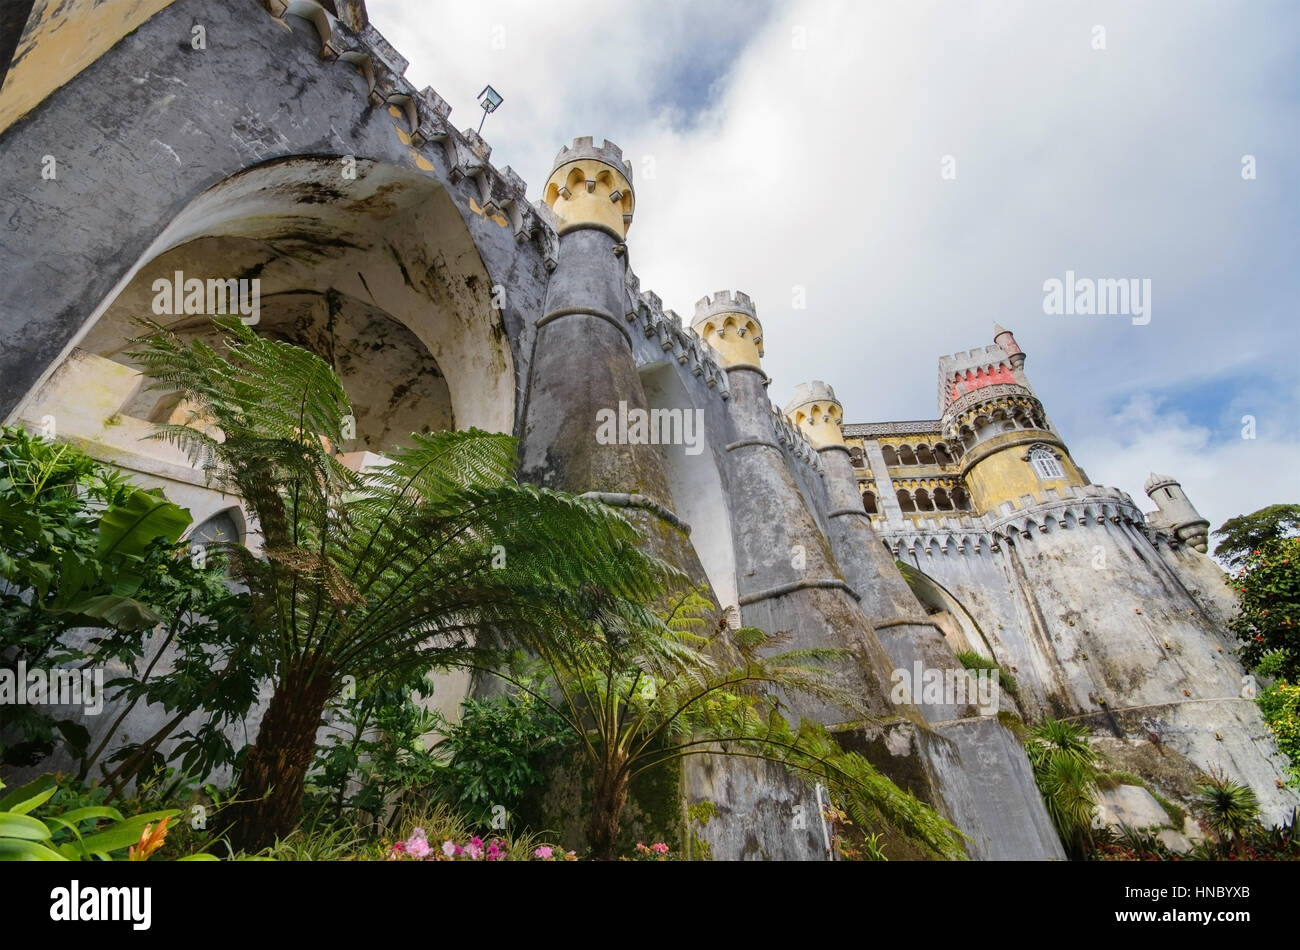 Facade of Pena national palace in Sintra, Portugal. - Stock Image